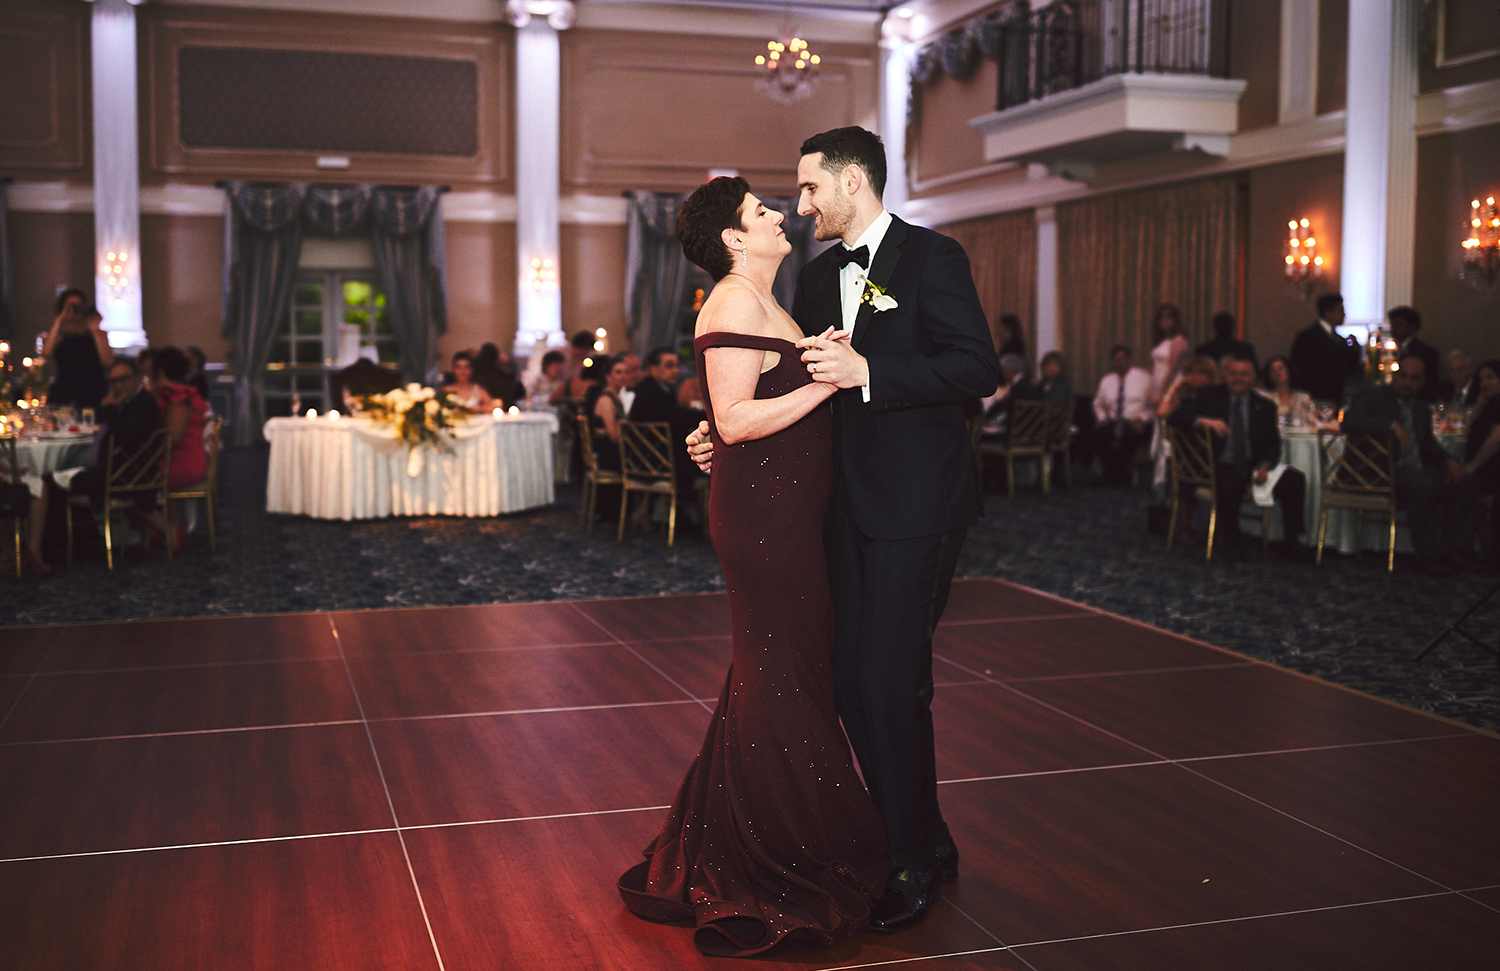 180519_PalaceatSomersetParkWeddingPhotography_NJWeddingPhotographer_By_BriJohnsonWeddings_0142.jpg